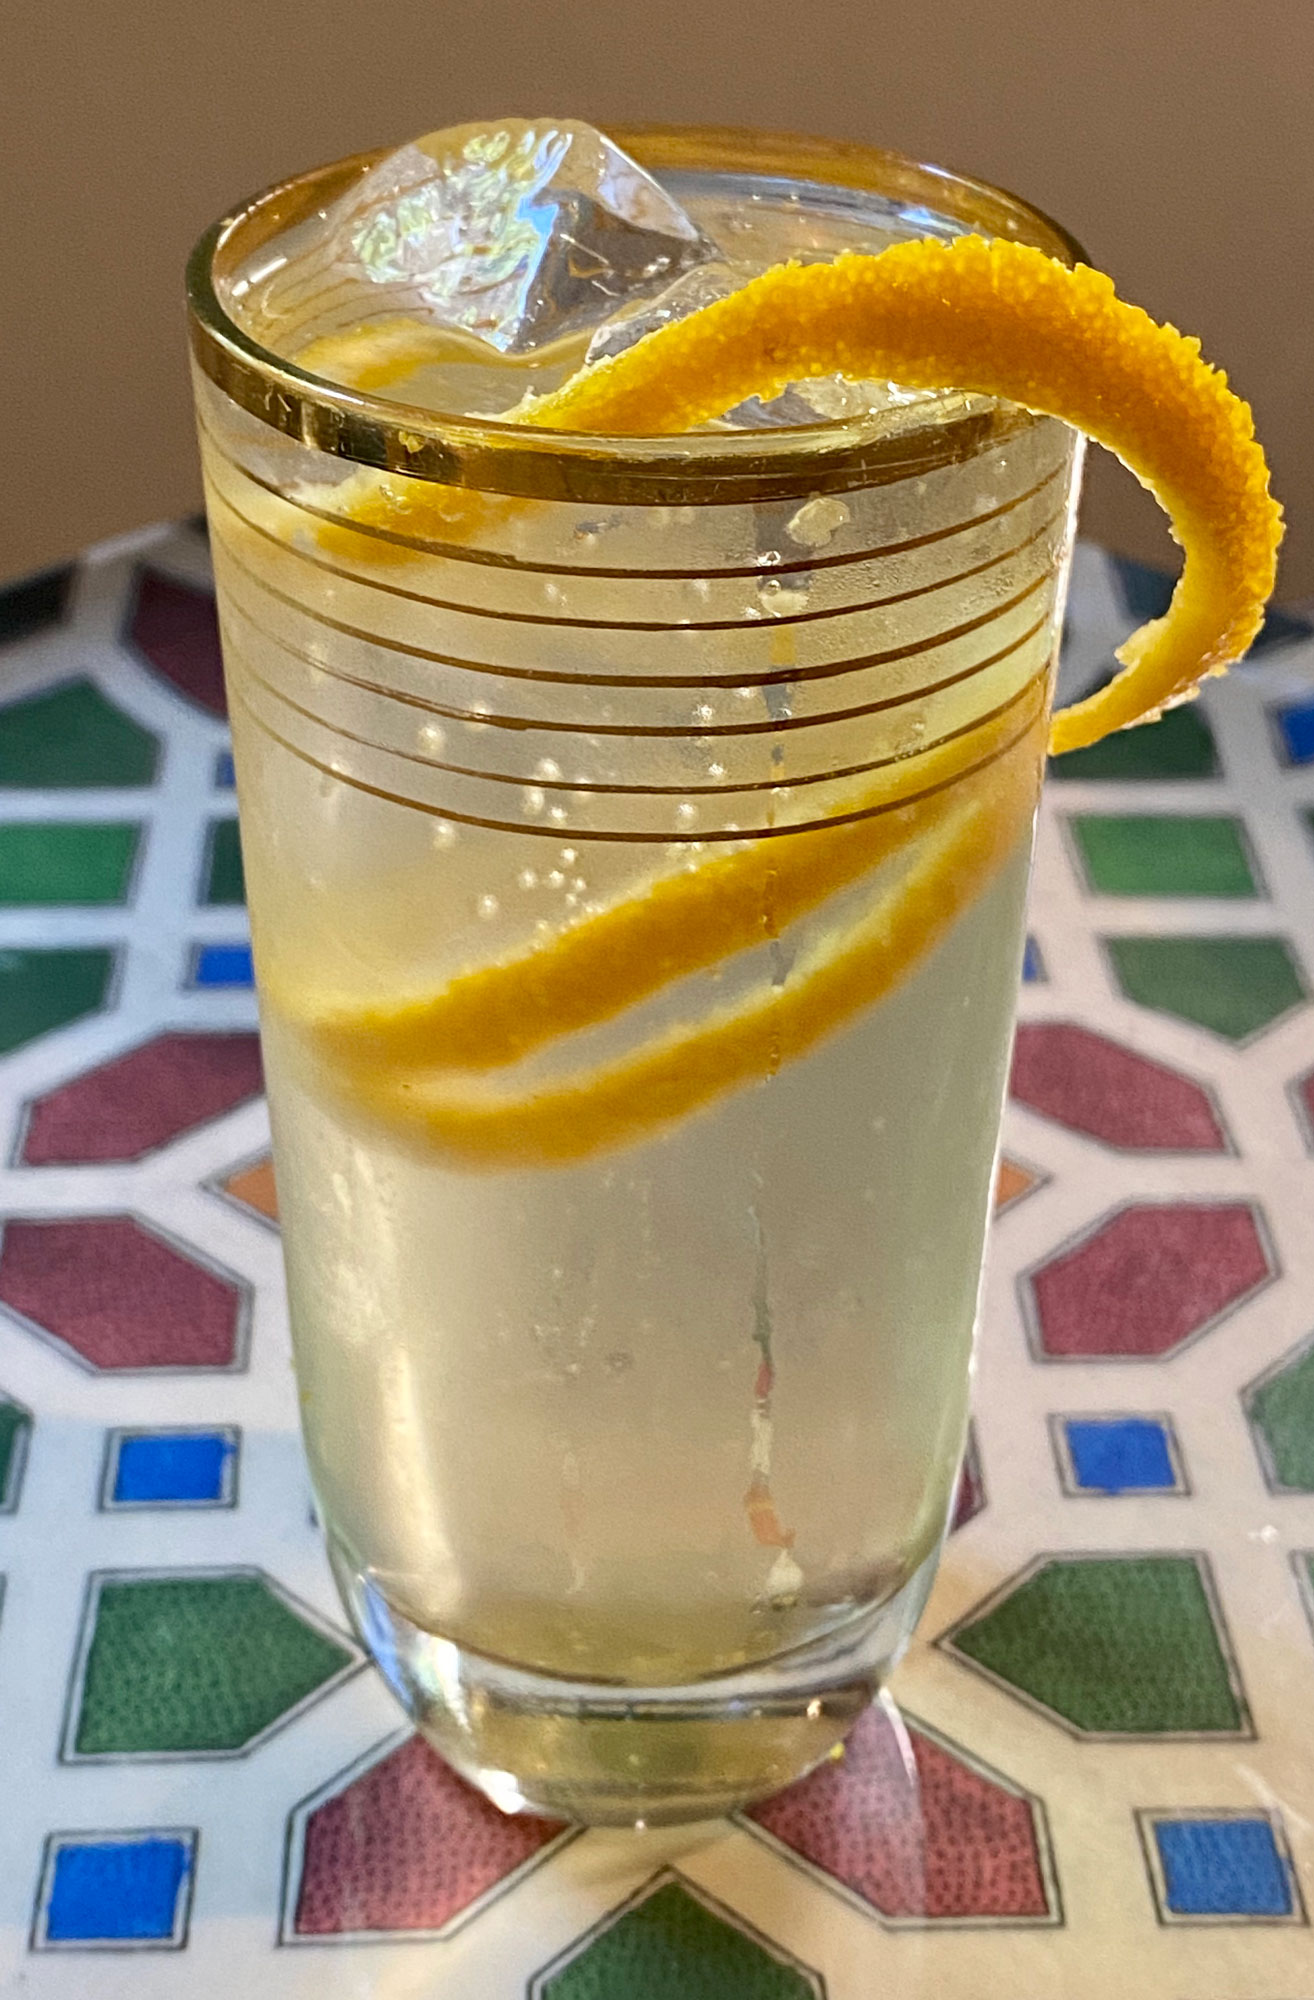 An example of the Americano Classico, the mixed drink (cocktail) featuring Cocchi Americano Bianco, and soda water; photo by Martin Doudoroff